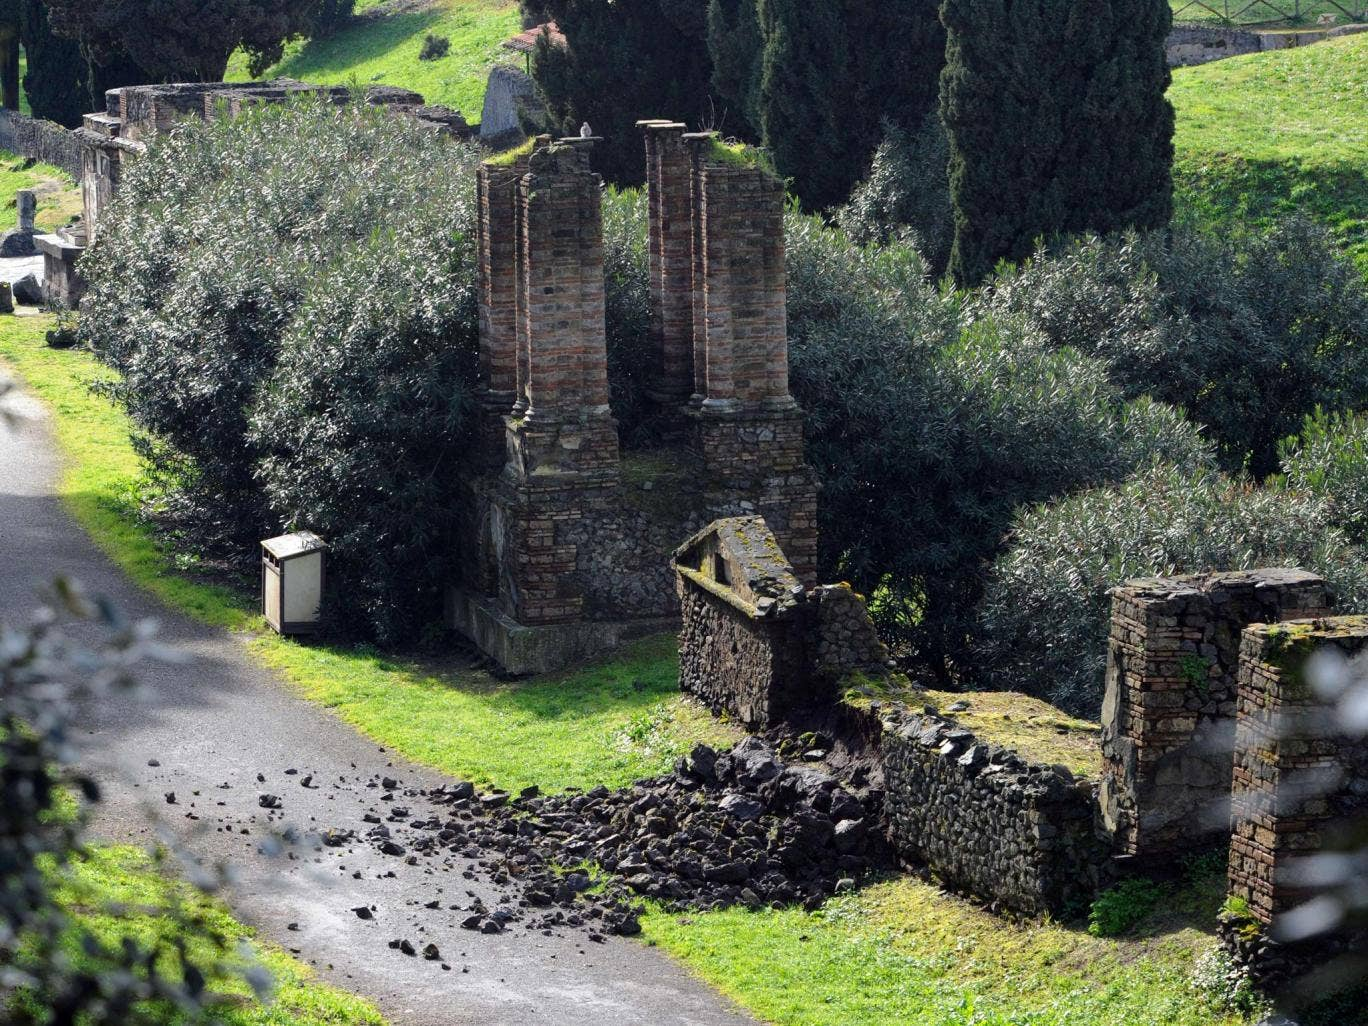 Bad weather was blamed for damage to the Porta Nocera cemetery